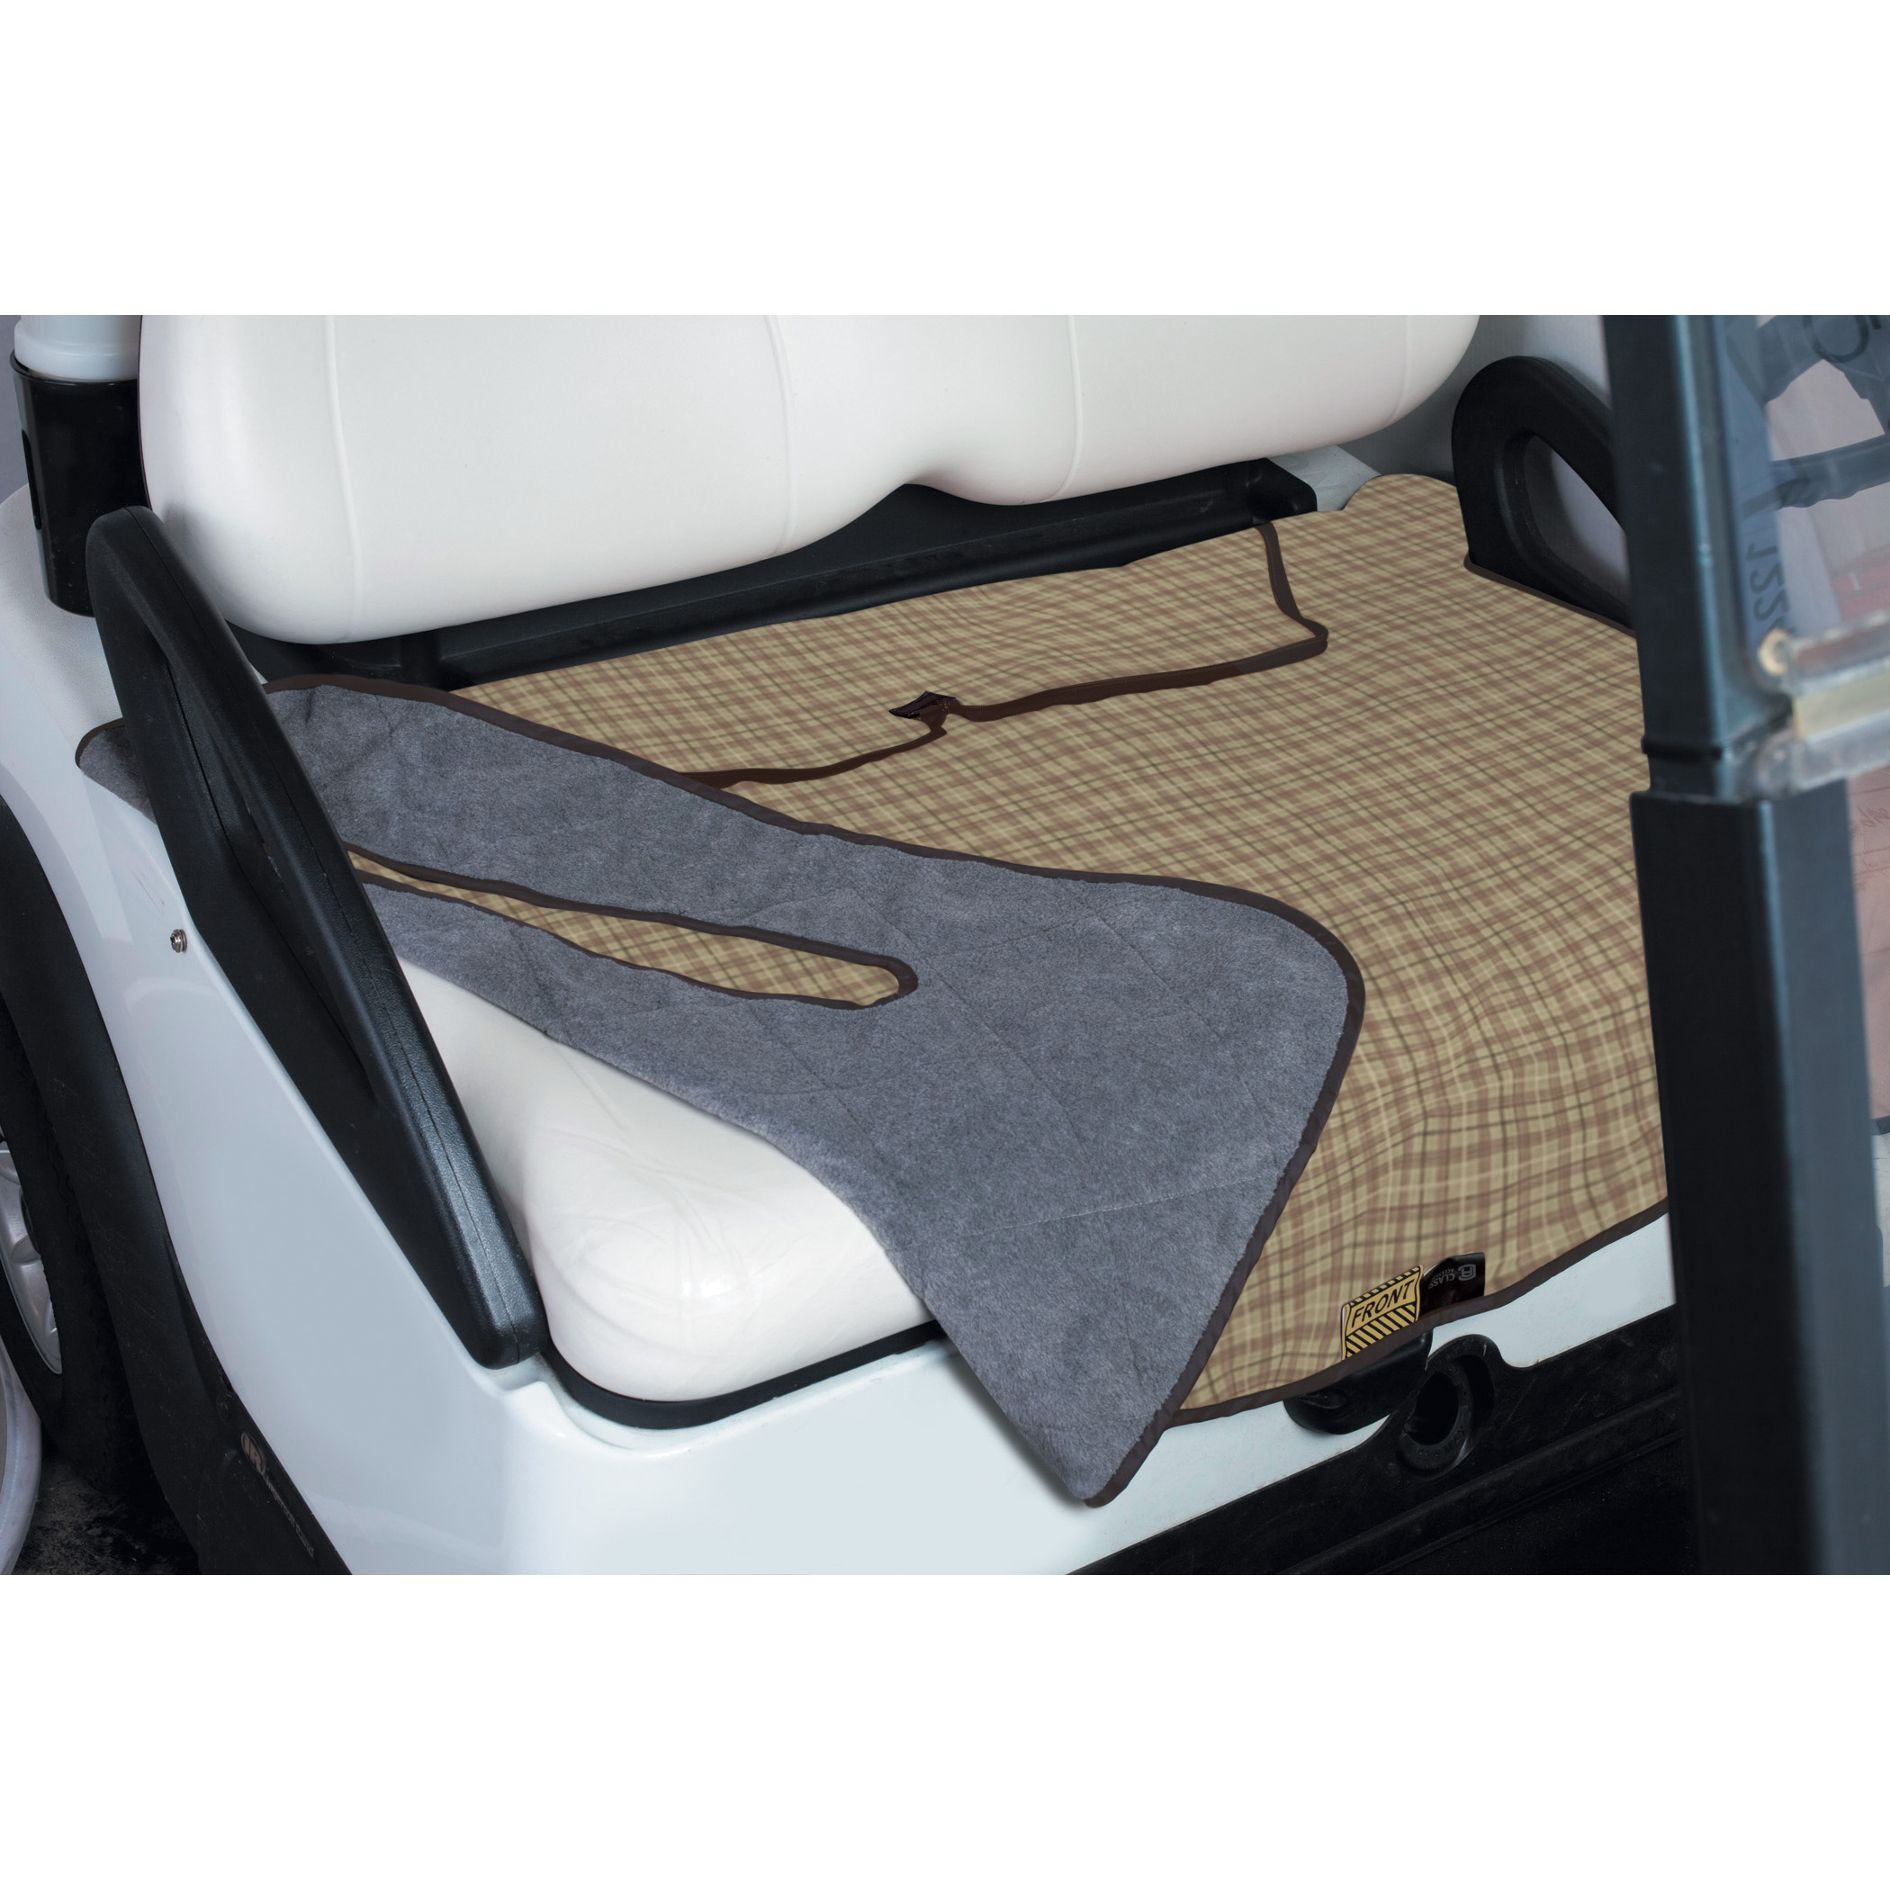 Classic Accessories Golf Cart Seat Blanketsfeature: Quilted top with plush fleece backing; Wipe-clean, water-resistant, heavy-duty fabric;